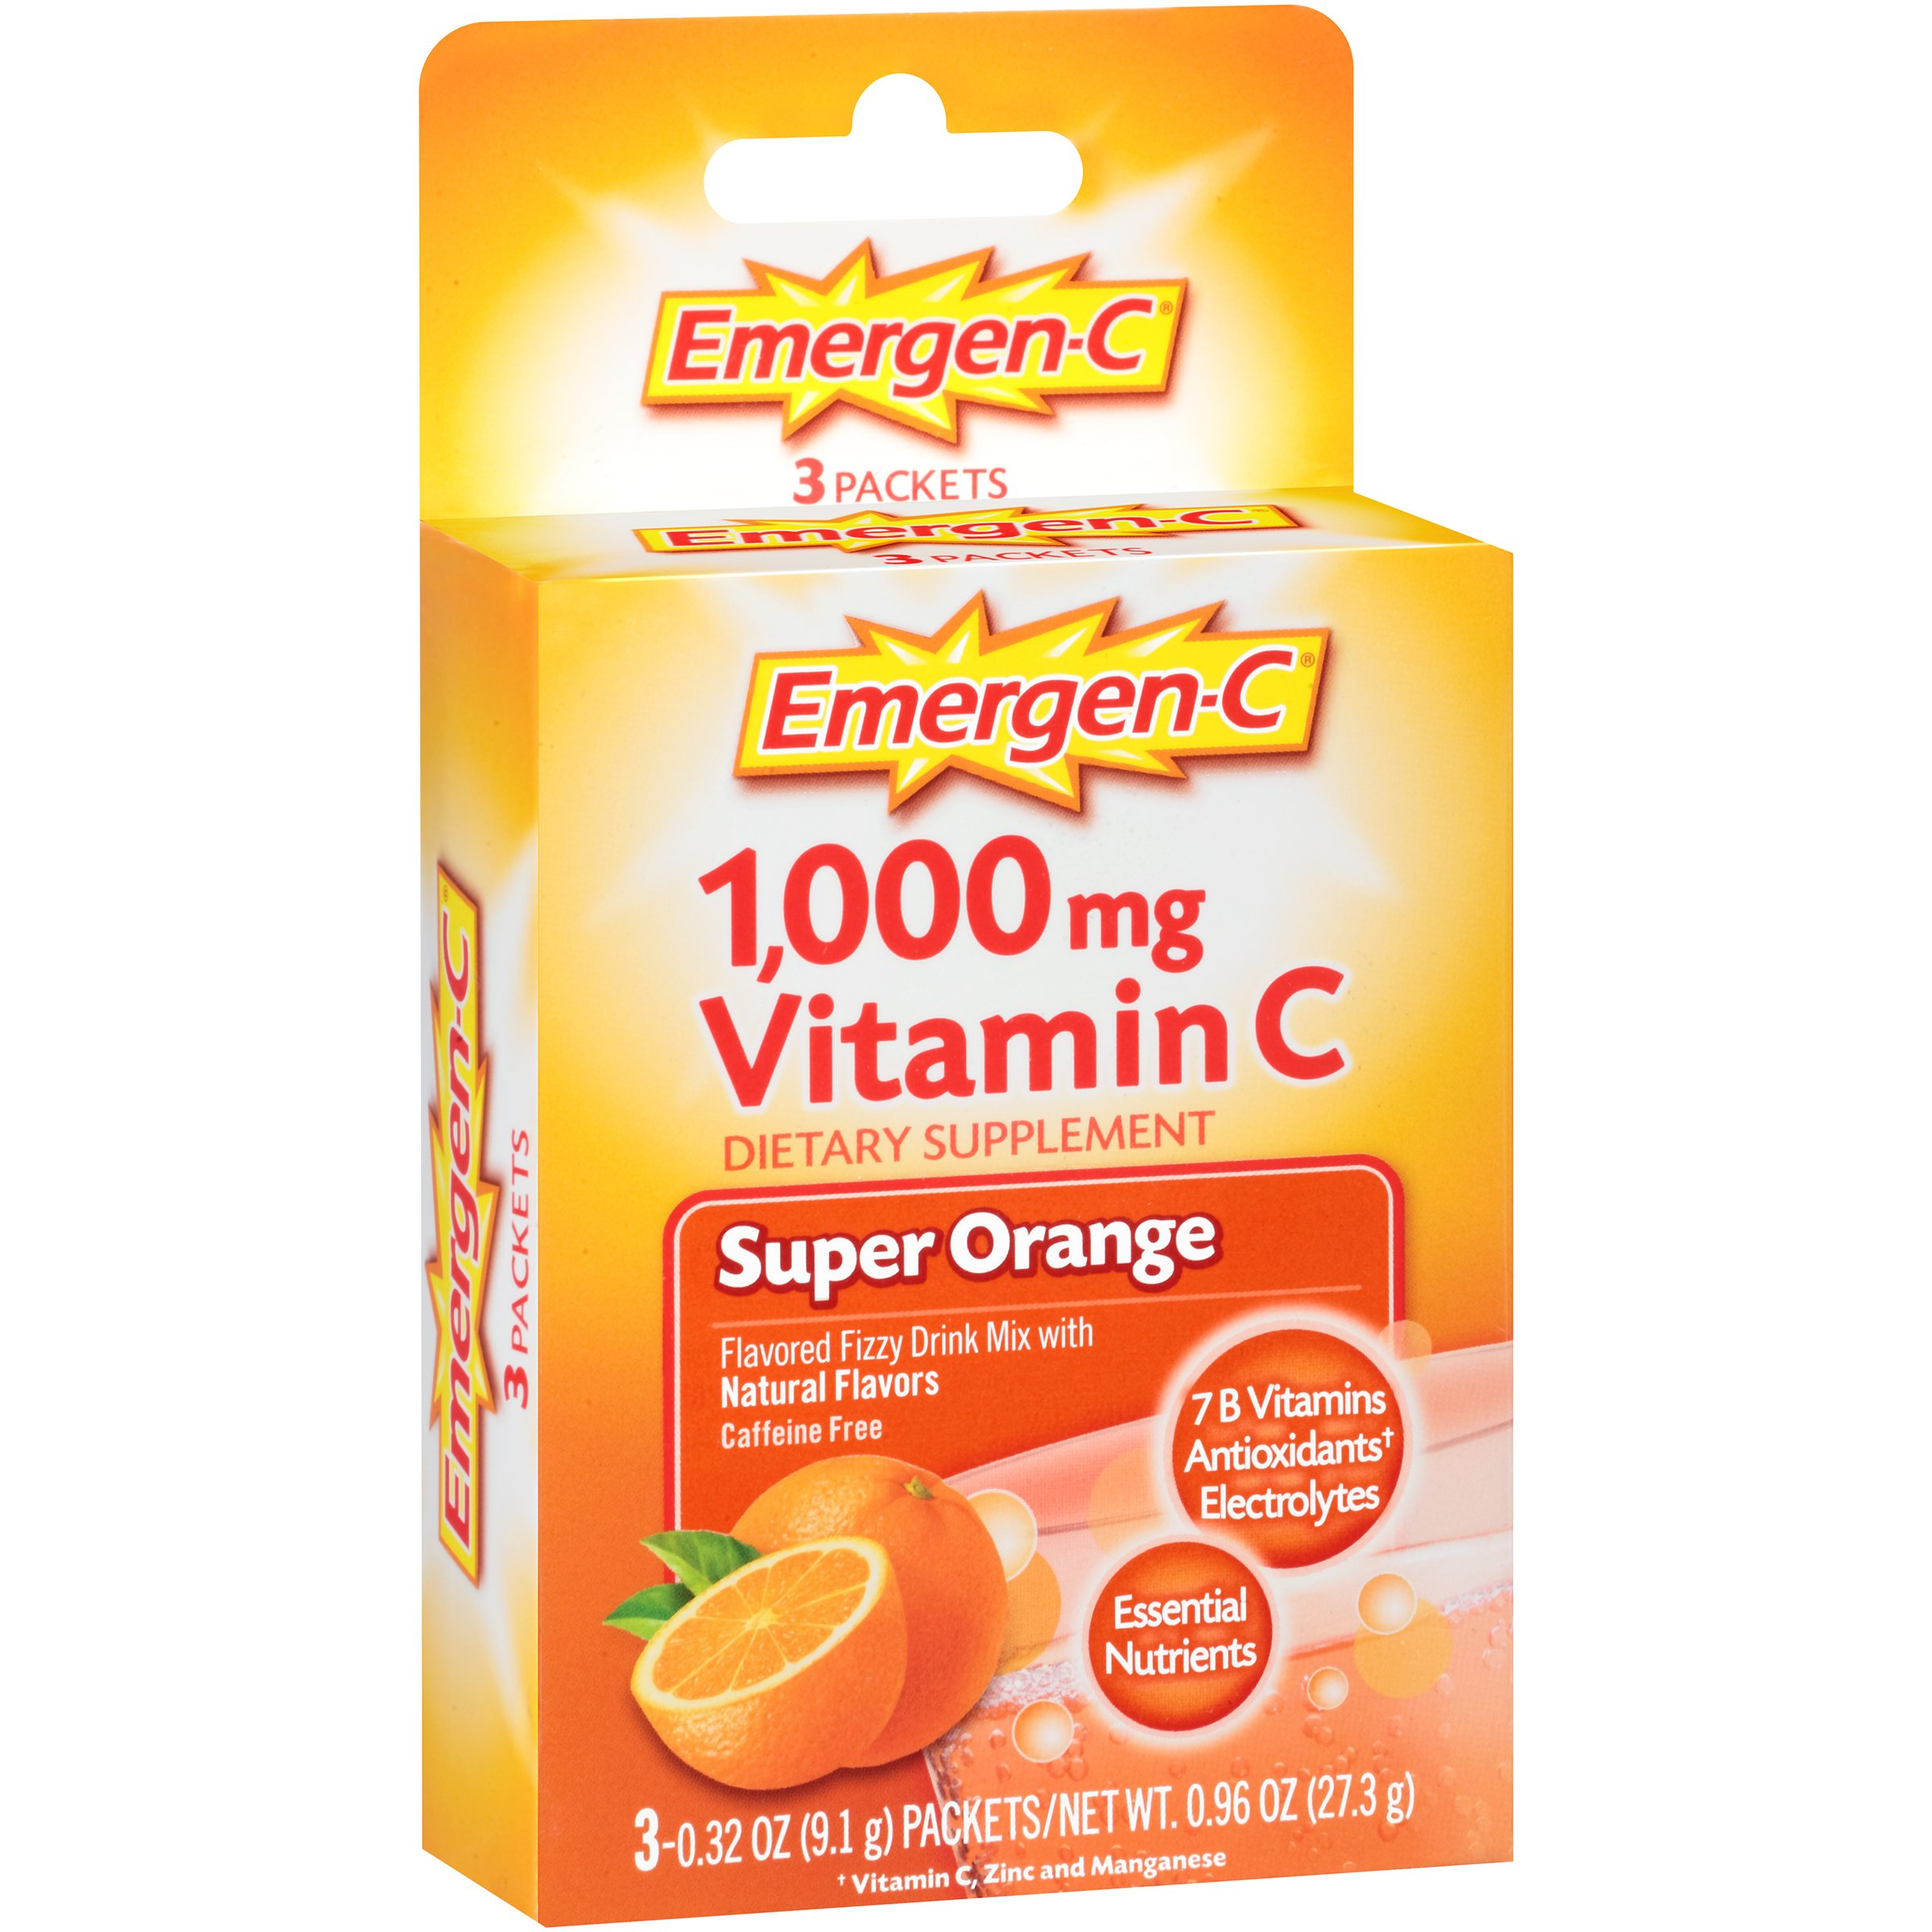 Emergen-C (3 Count, Super Orange Flavor) Dietary Supplement Fizzy Drink Mix with 1000mg Vitamin CC, 0.32 Ounce Packets, Caffeine Free